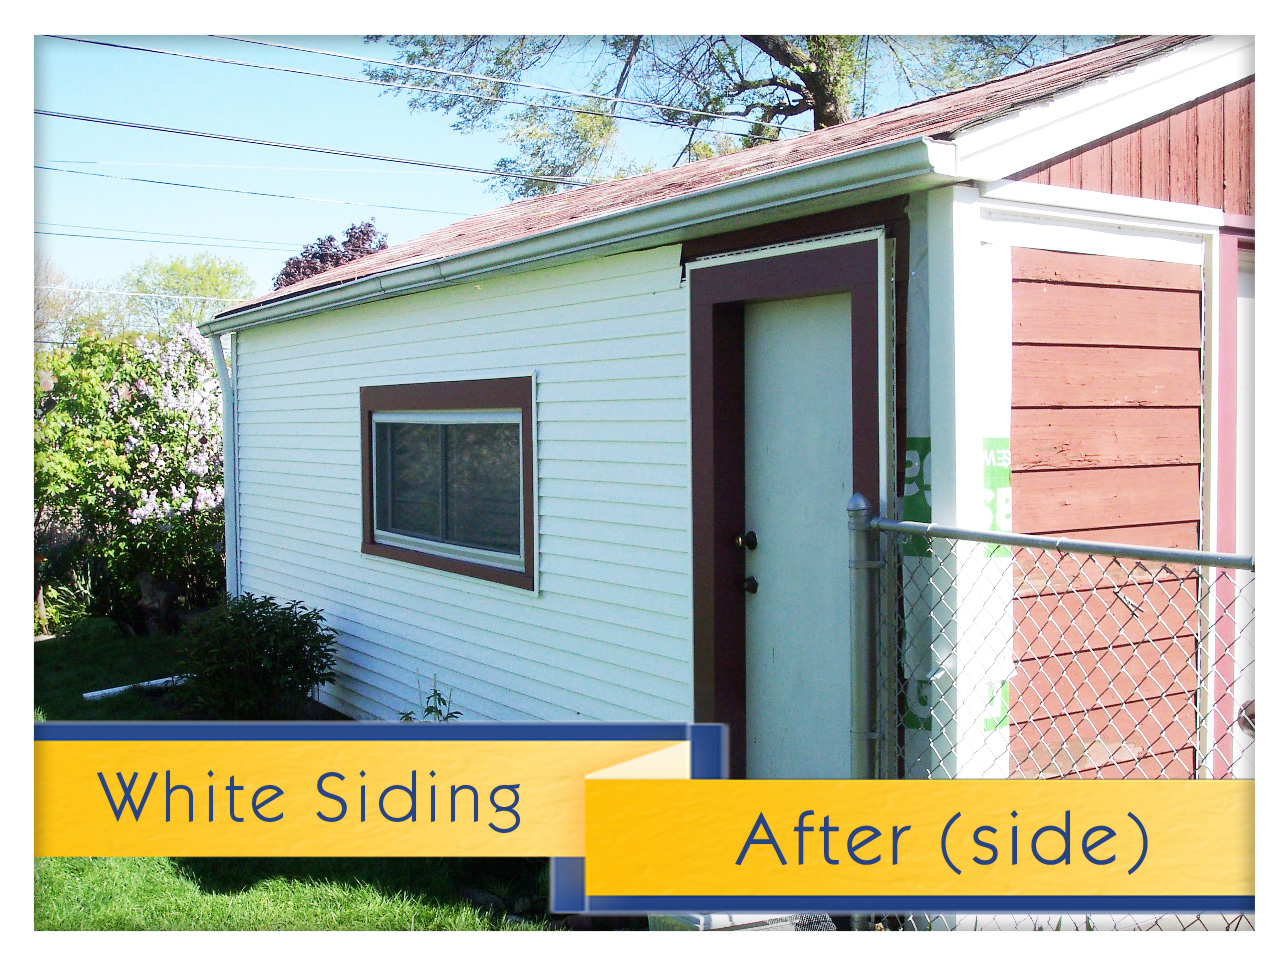 White Siding Project